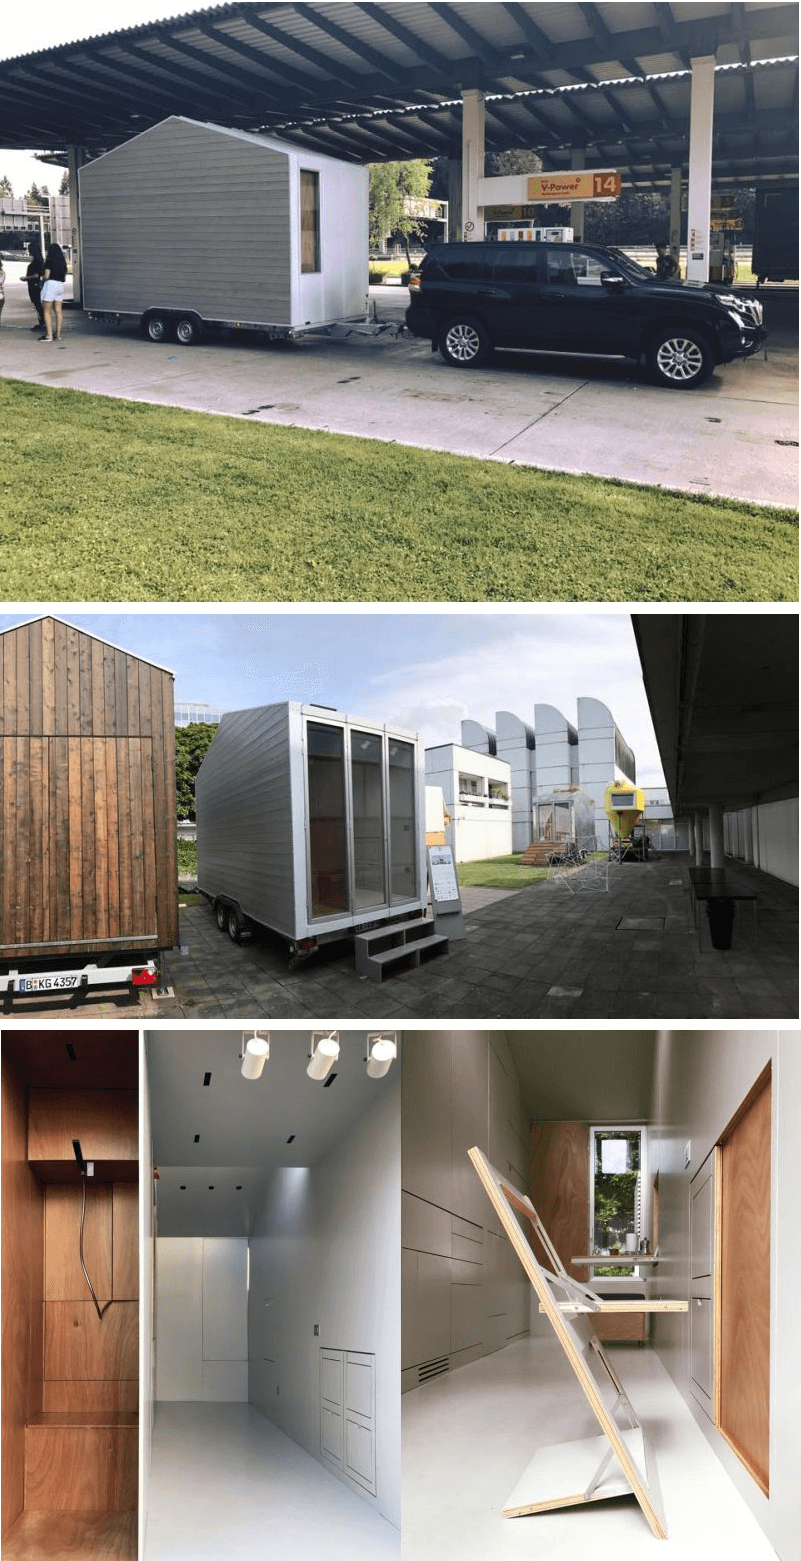 18 tiny houses on wheels design ideas to clone small house tips. Black Bedroom Furniture Sets. Home Design Ideas